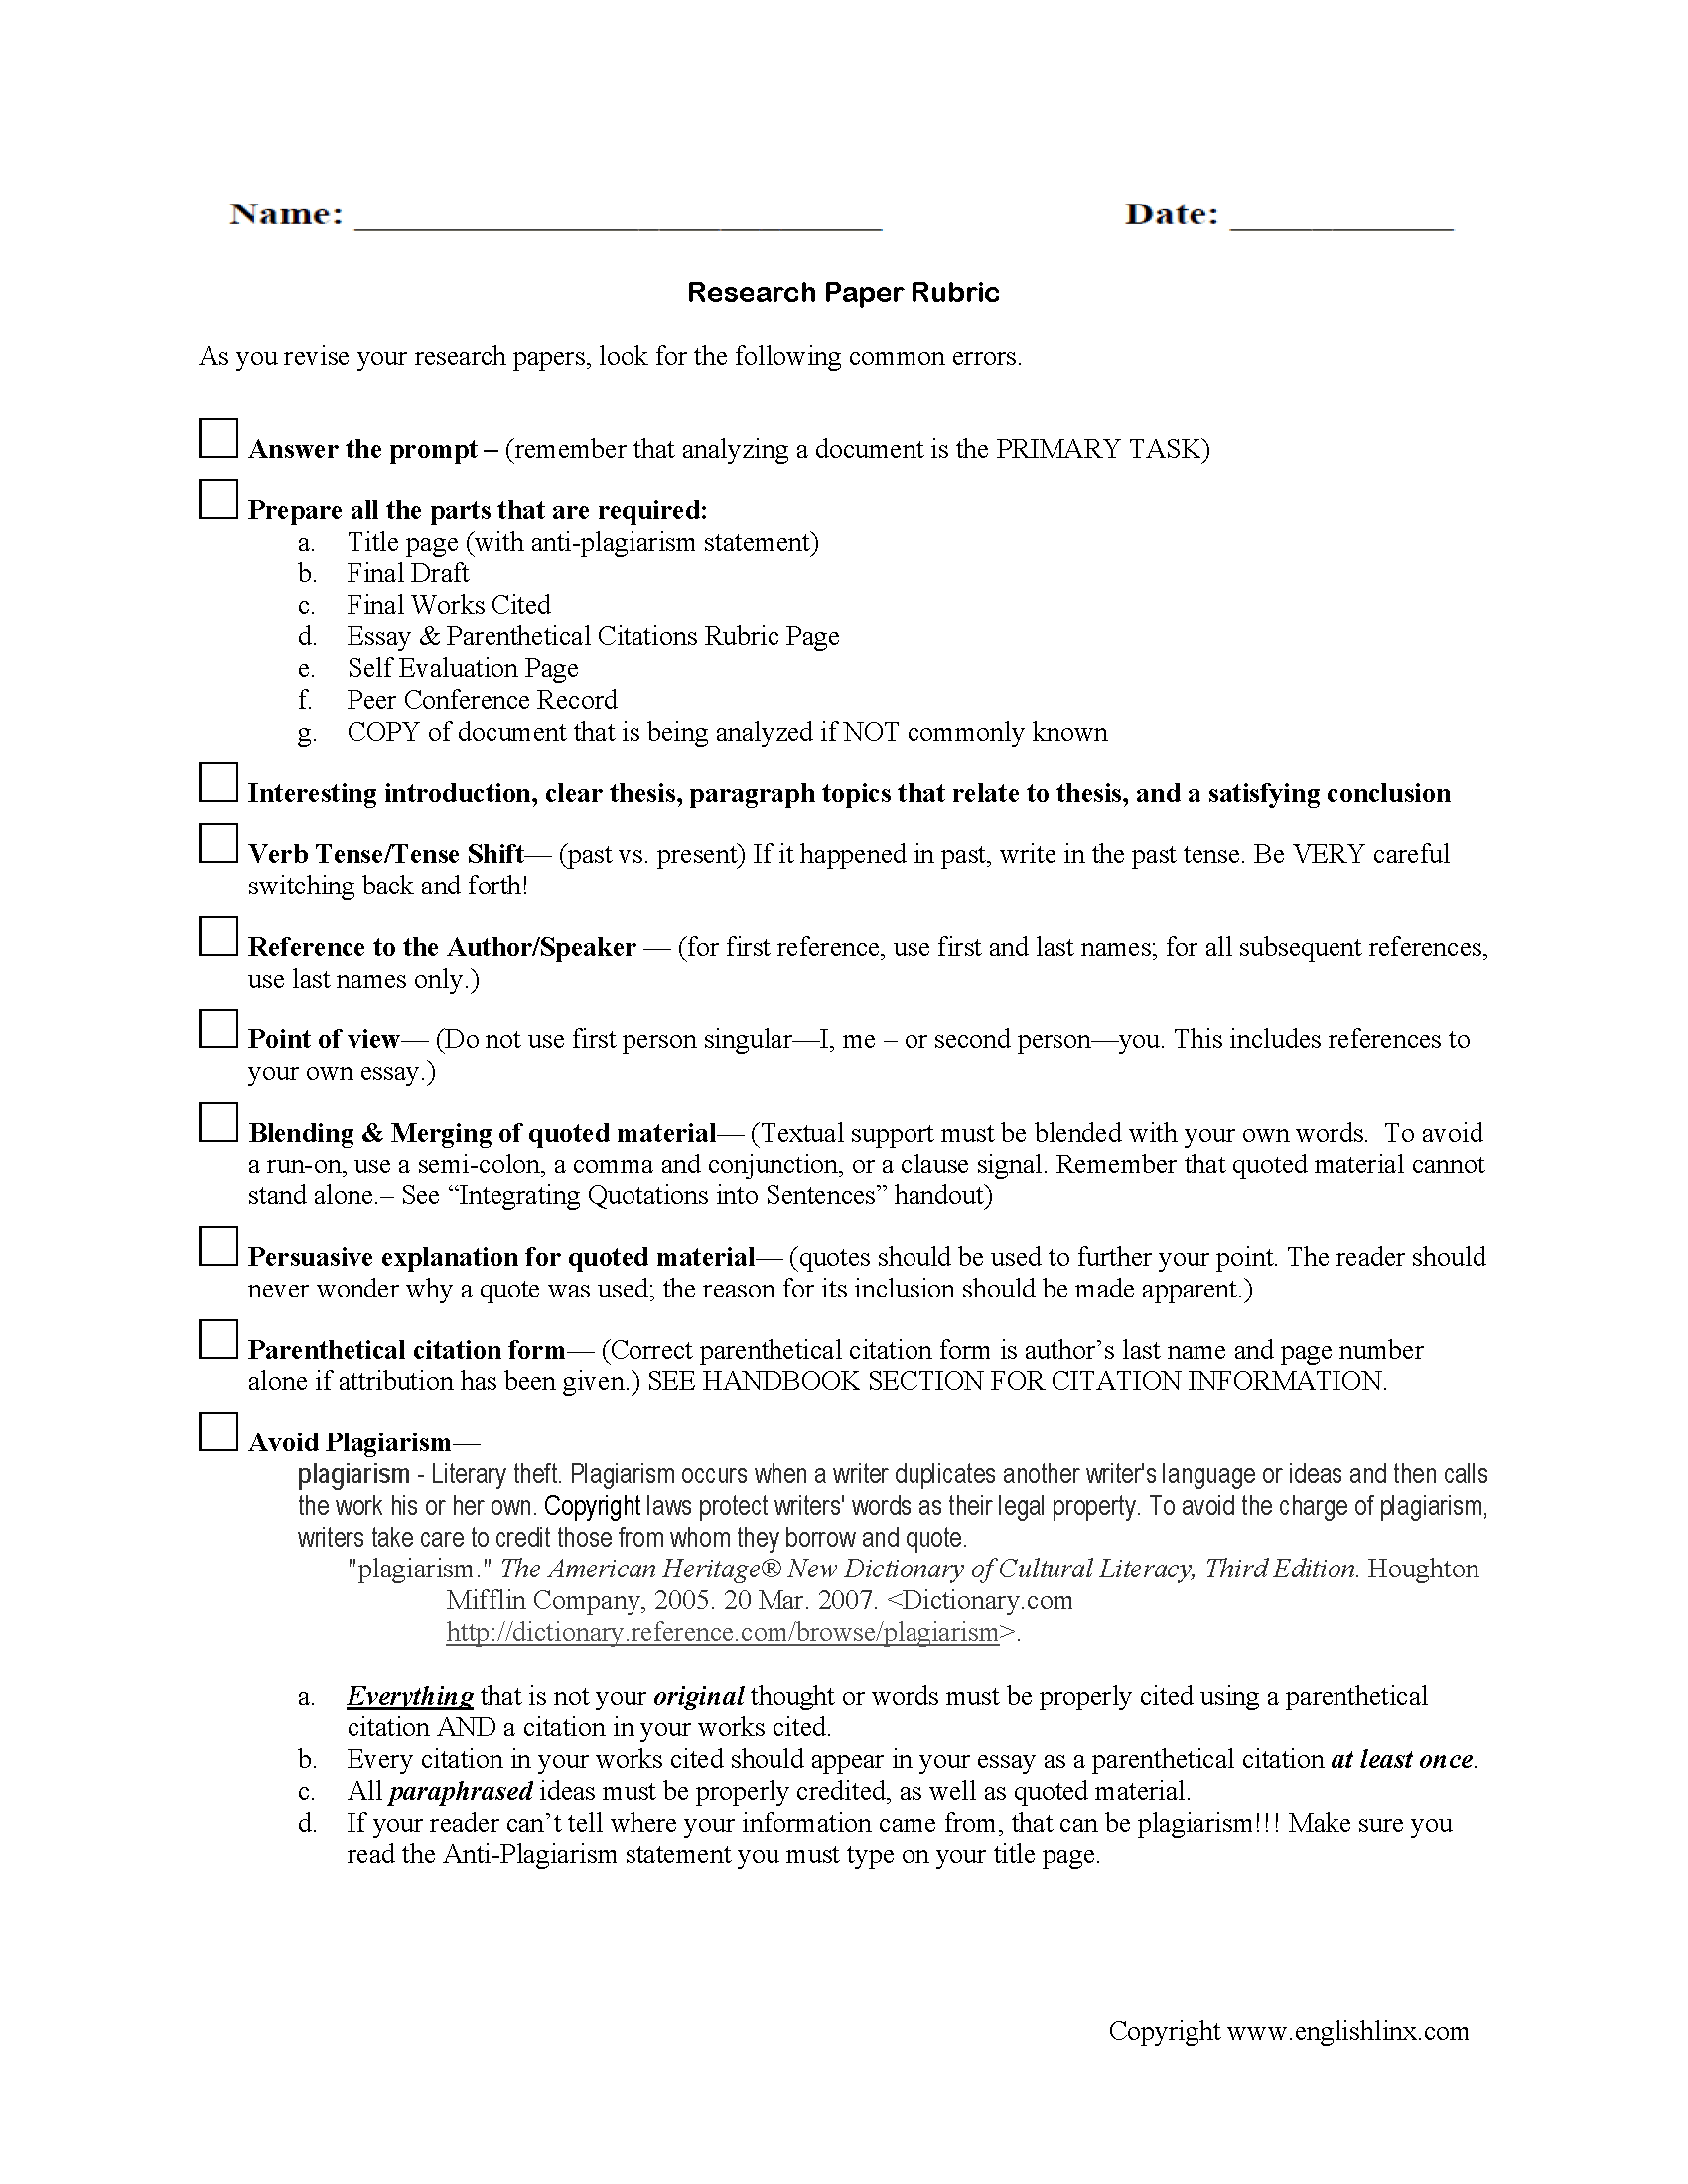 com english worksheets research worksheets